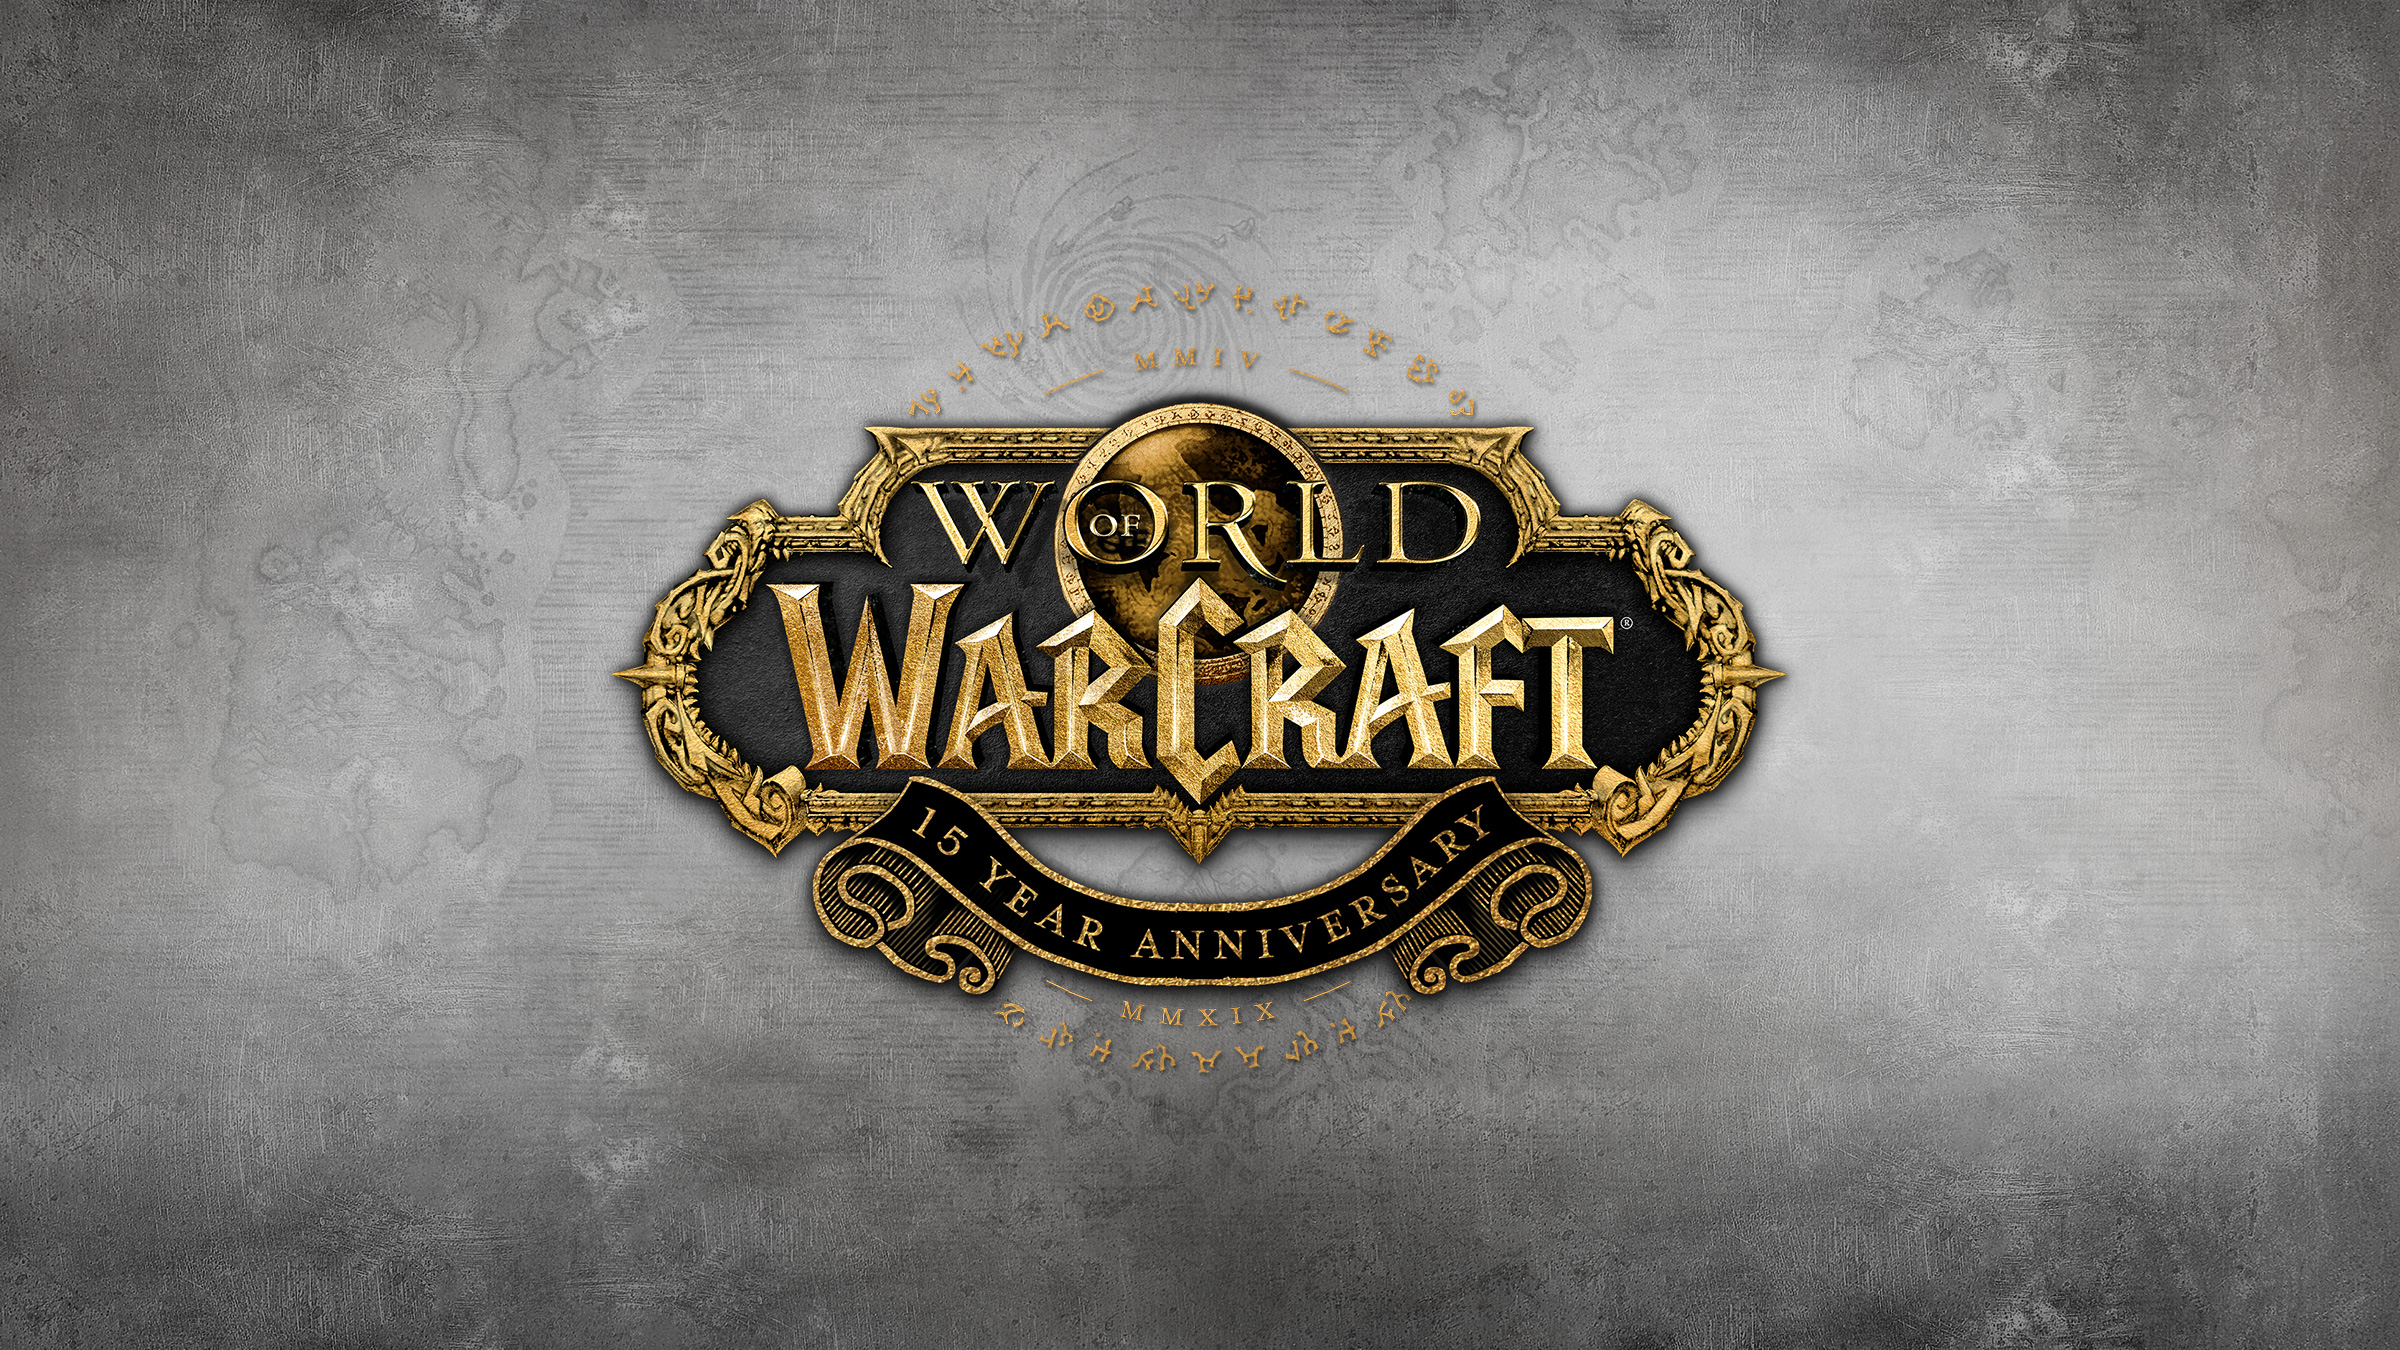 Préachetez la World of Warcraft 15th Anniversary Collector's Edition